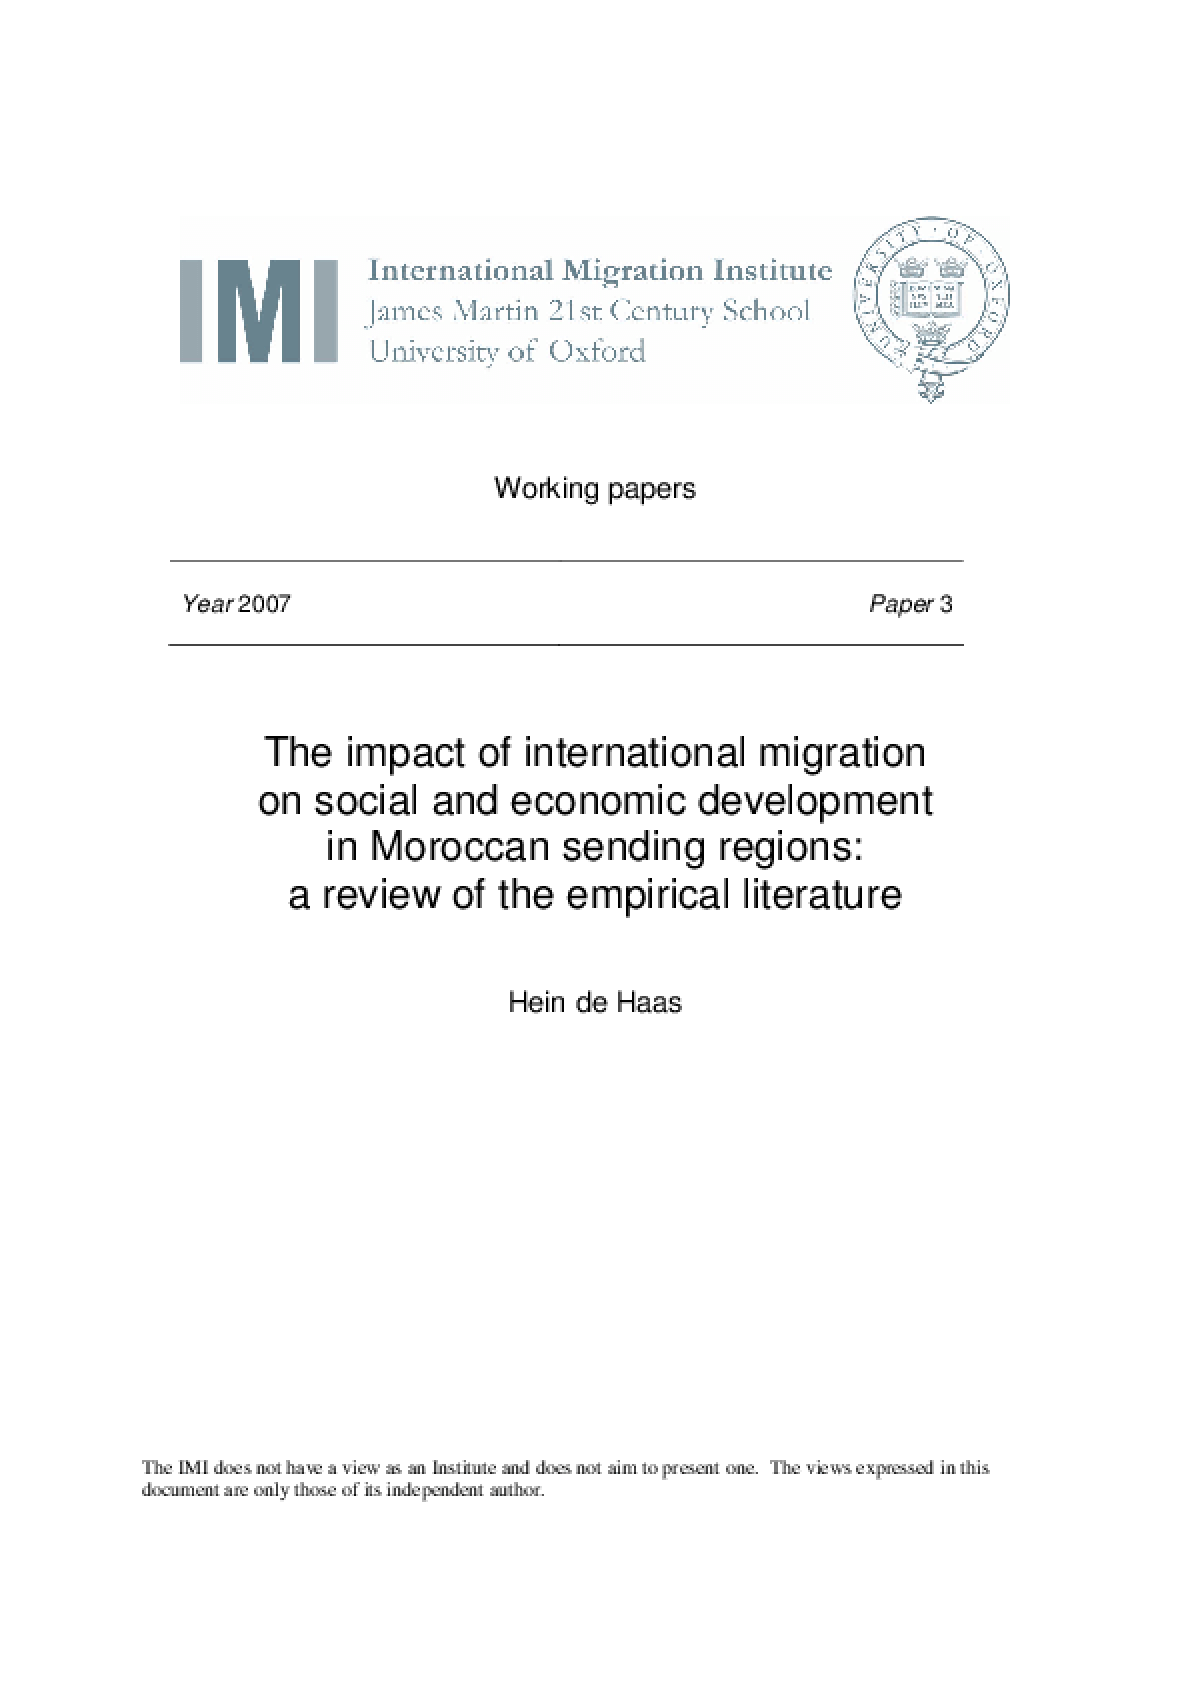 The Impact of International Migration on Social and Economic Development in Moroccan Sending Regions: A Review of the Empirical Literature